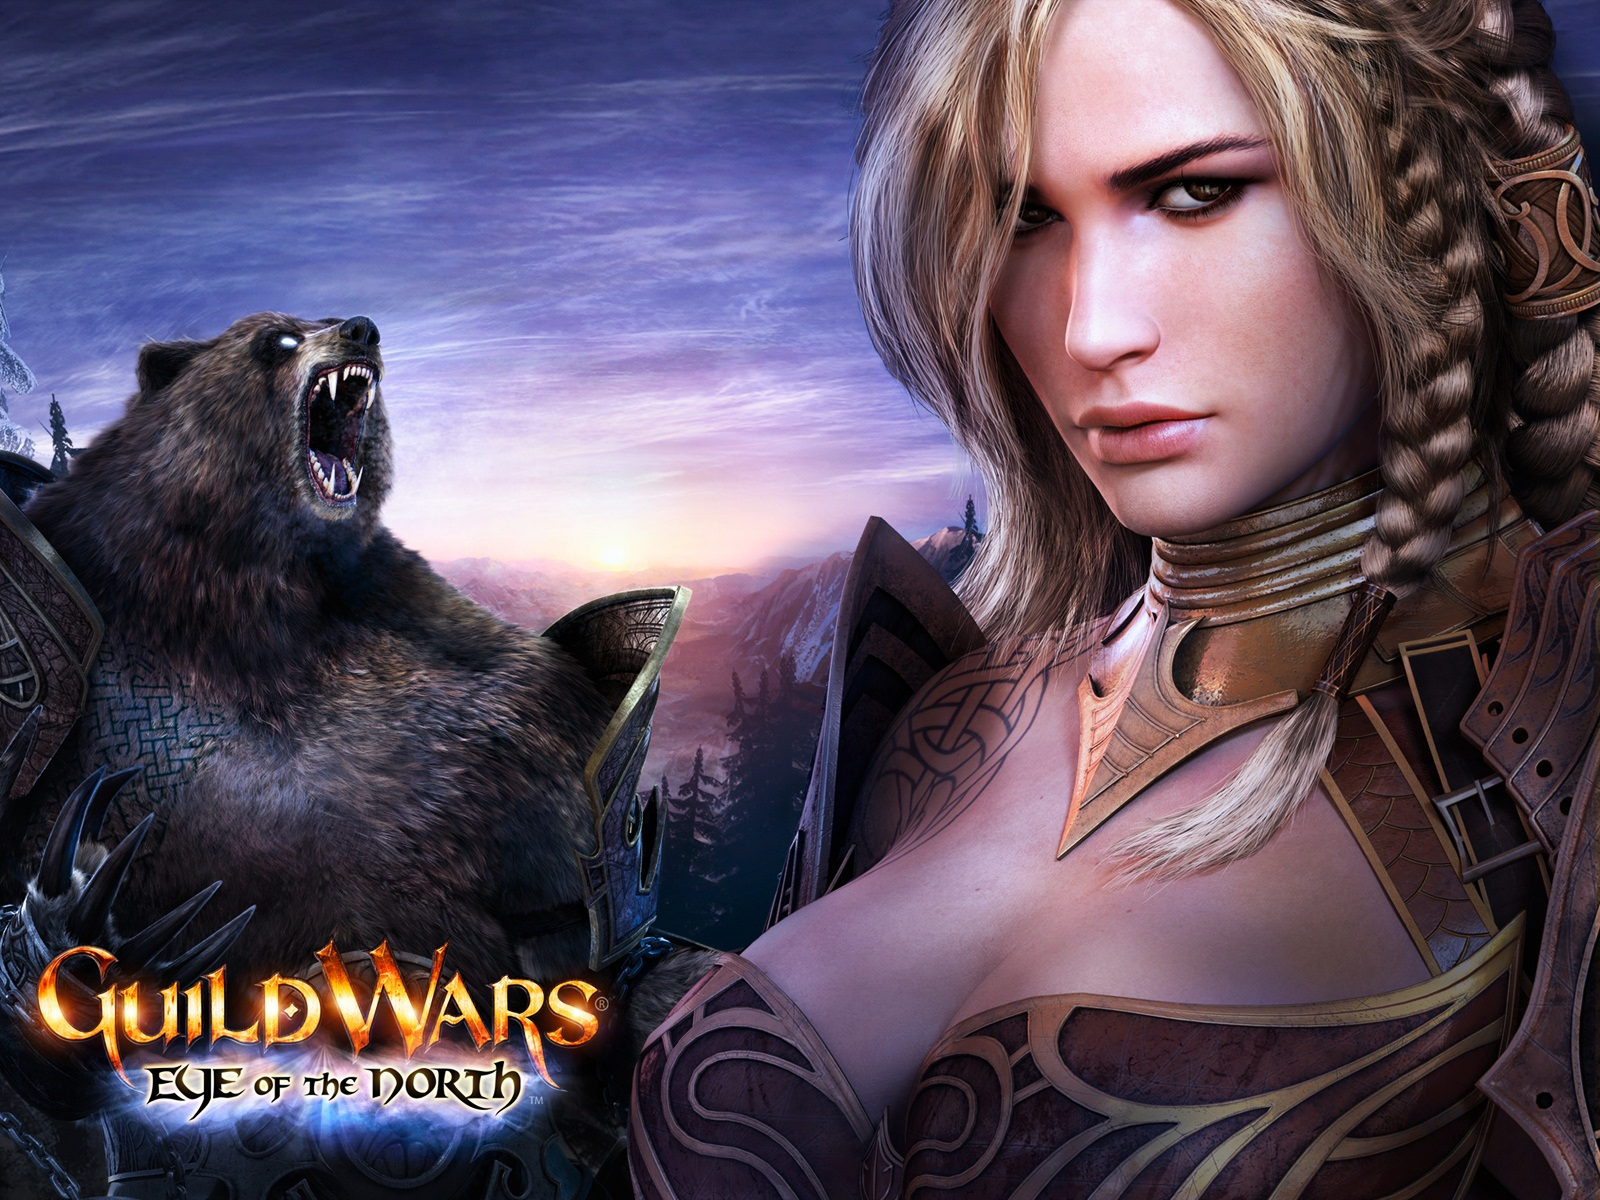 Guild Wars Eye of the North 787.52 Kb